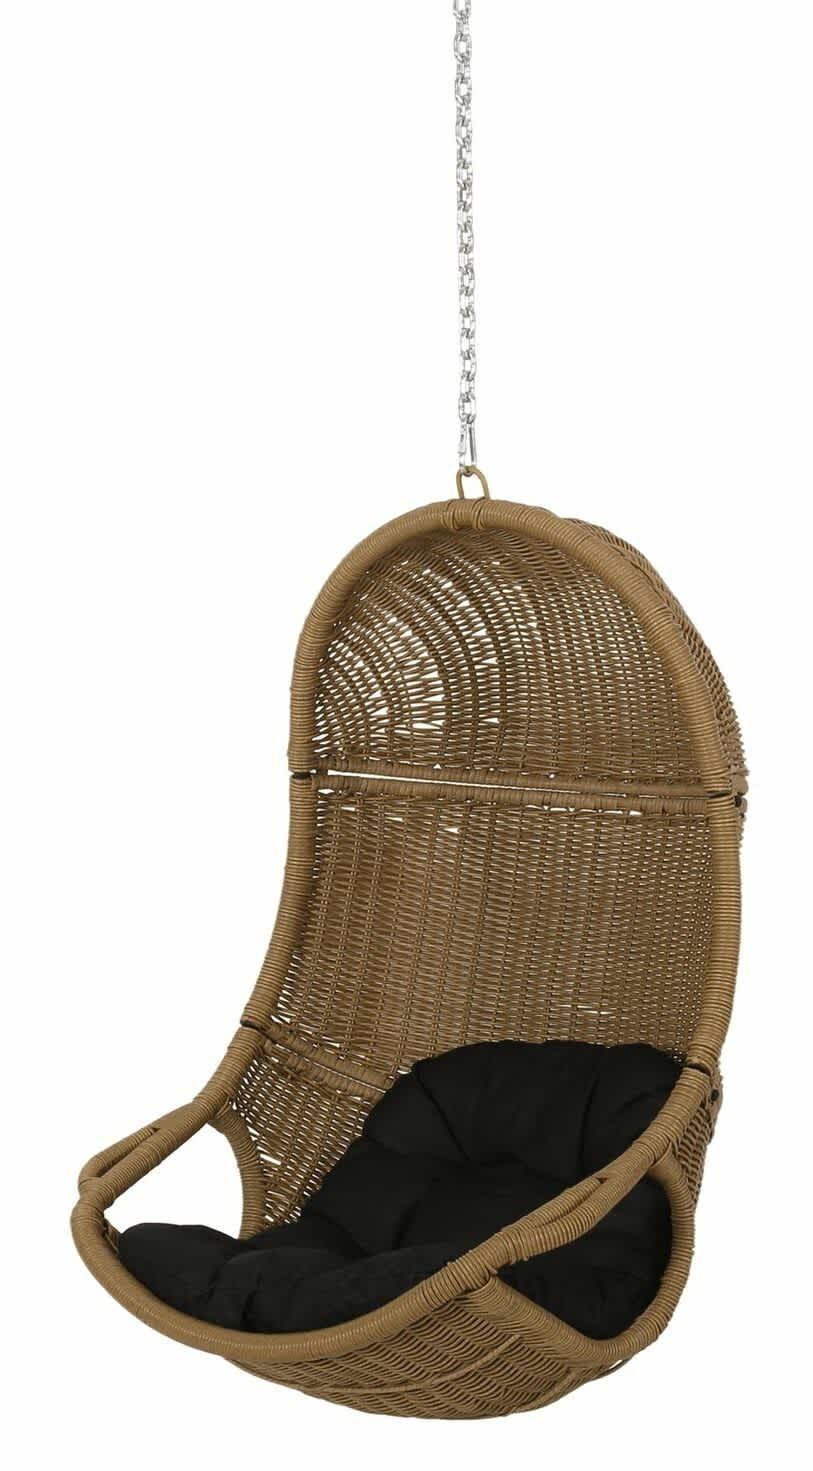 GDFStudio Berrien Orville Wicker Hanging Nest Chair